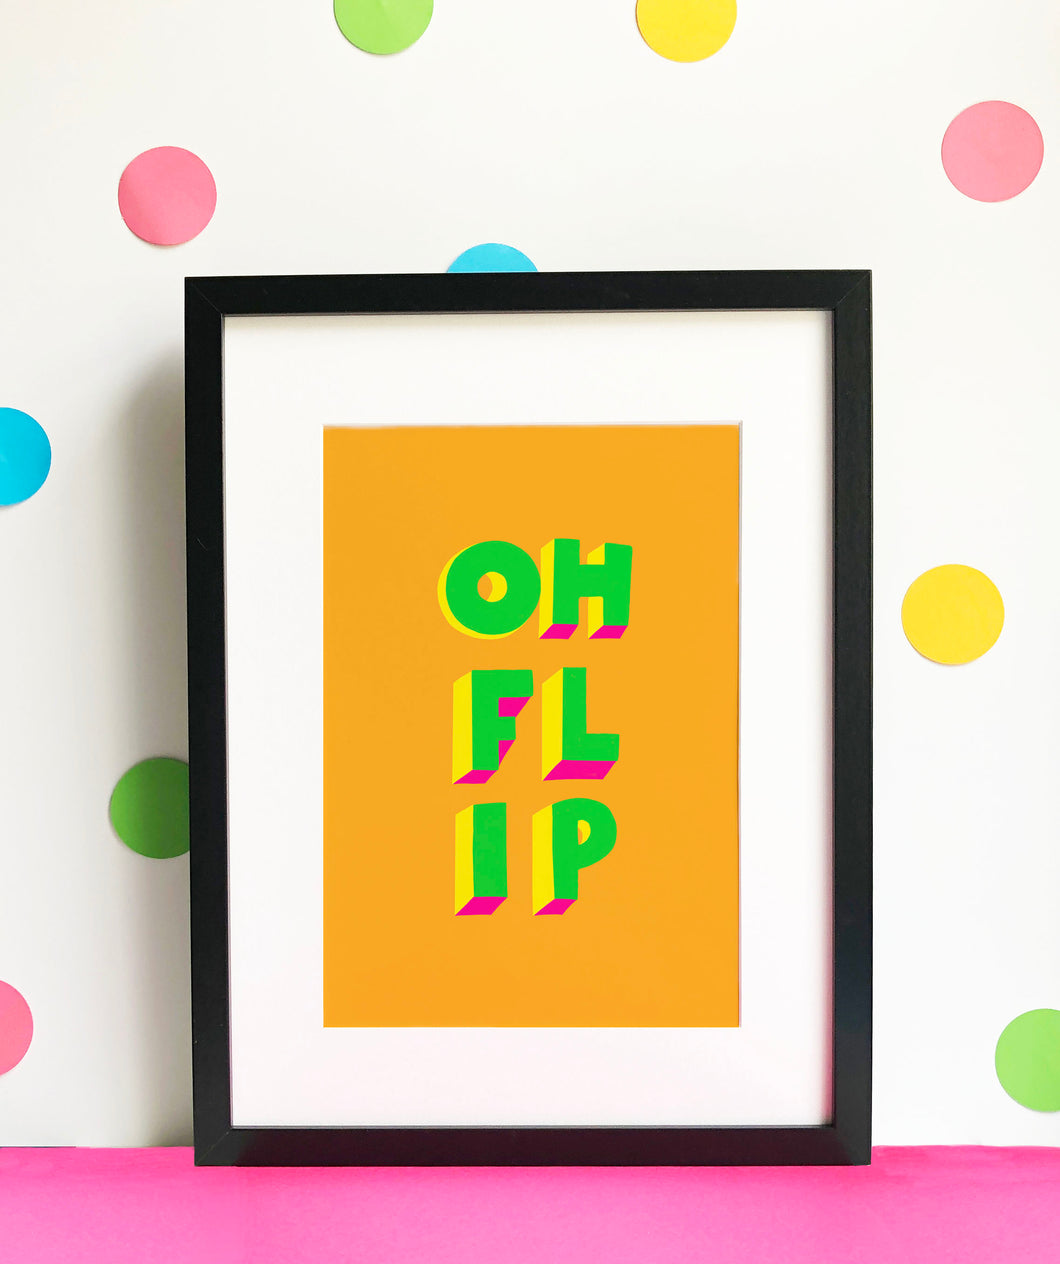 OH FLIP giclee illustration print